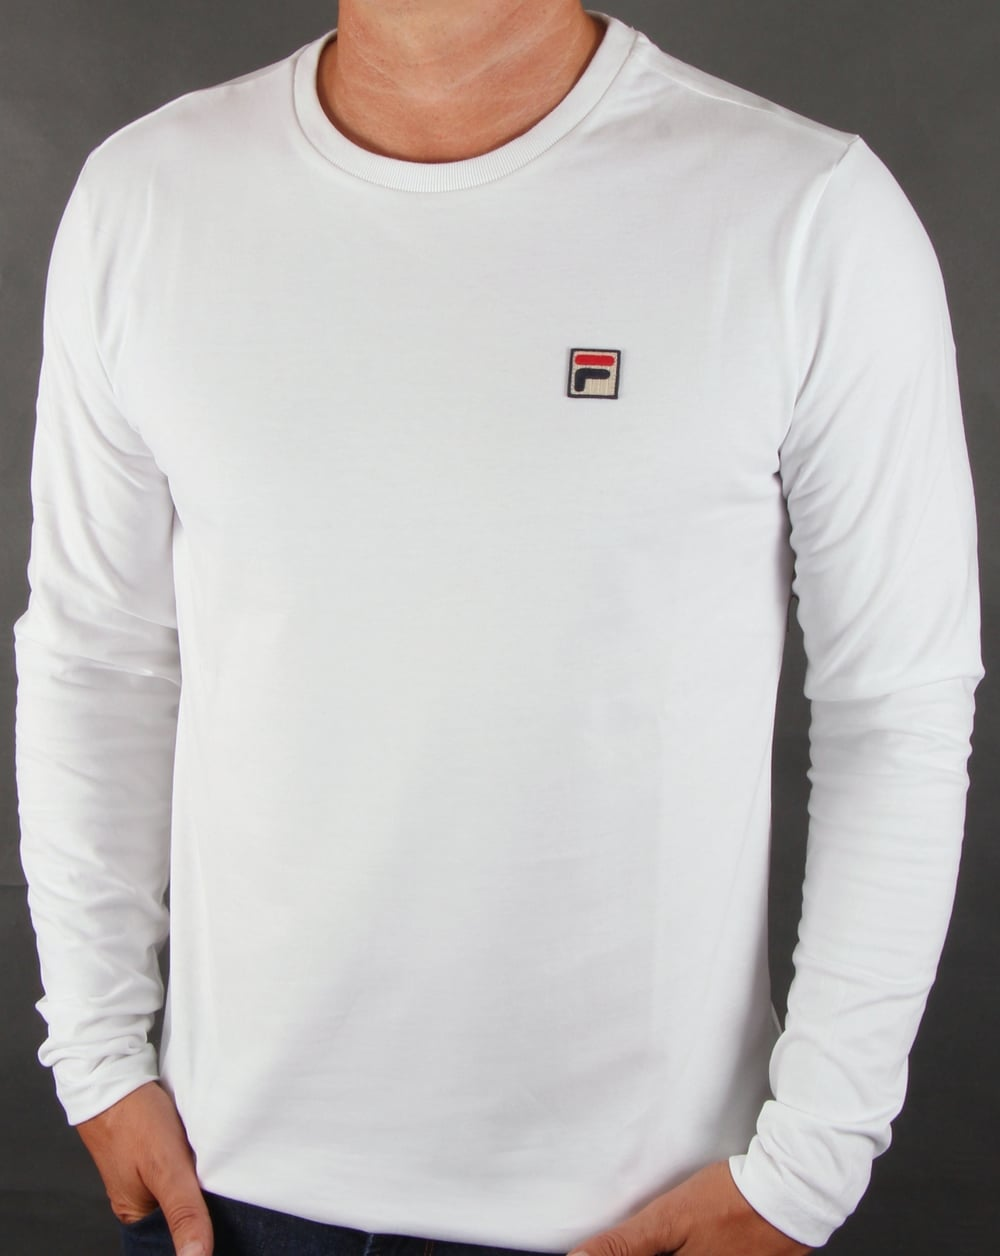 Fila vintage long sleeve t shirt white tee mens for Retro long sleeve t shirts